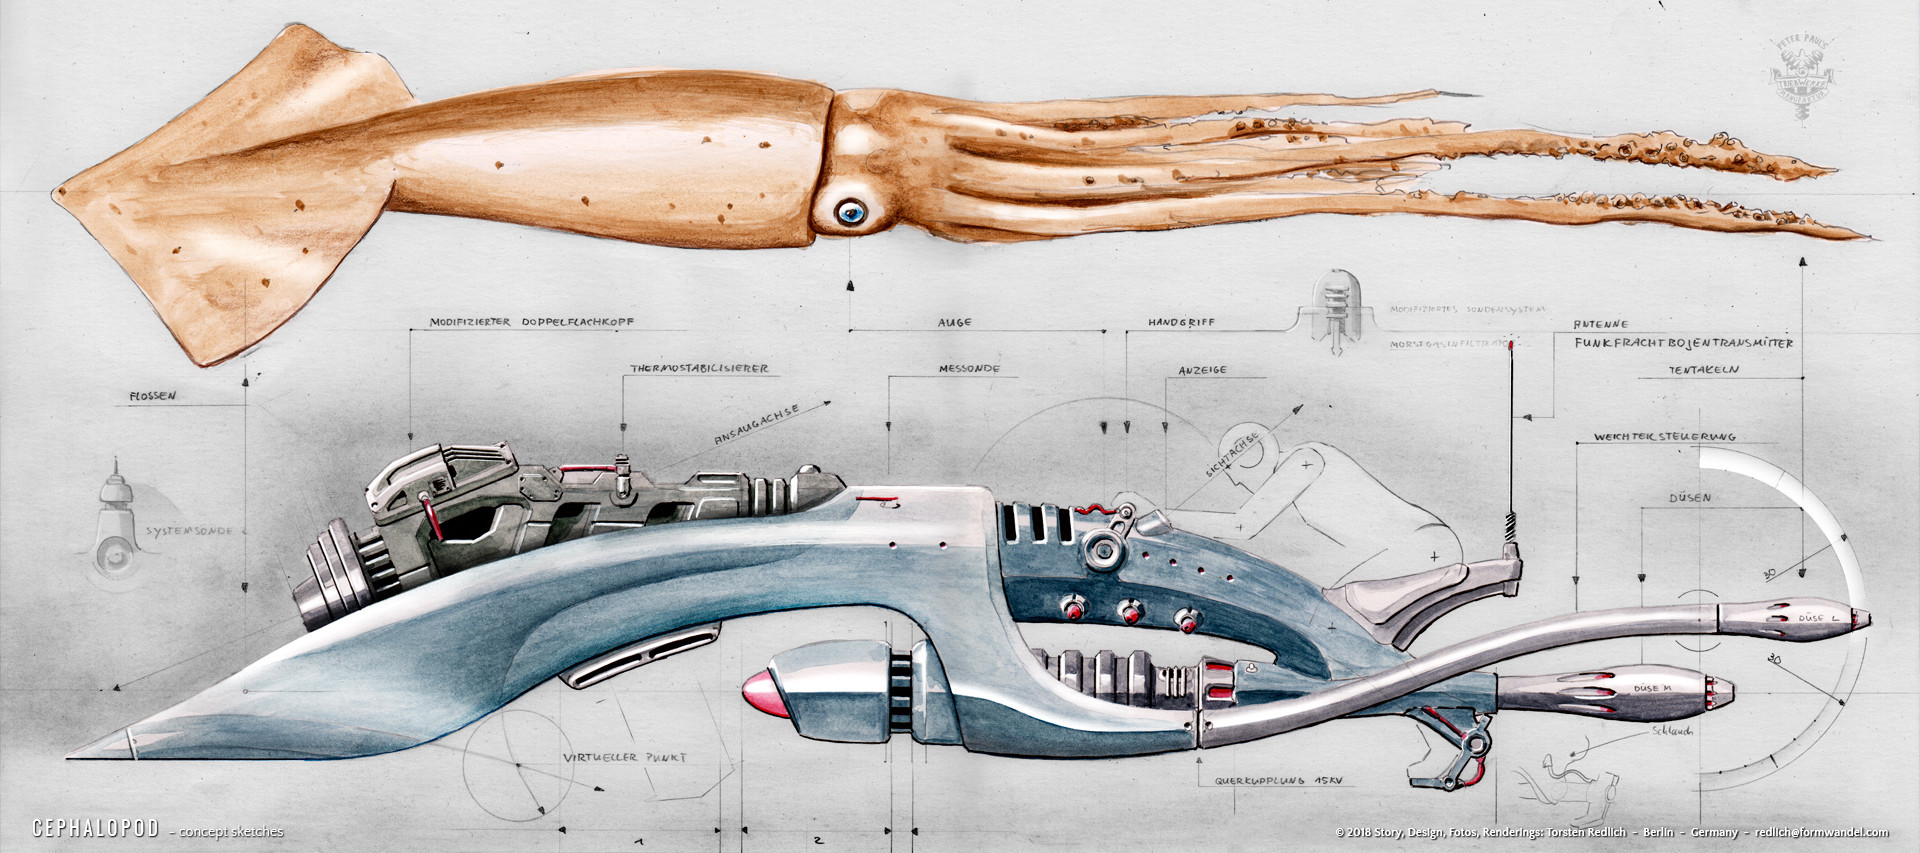 CEPHALOPOD - Giant Squid - design drawings 2